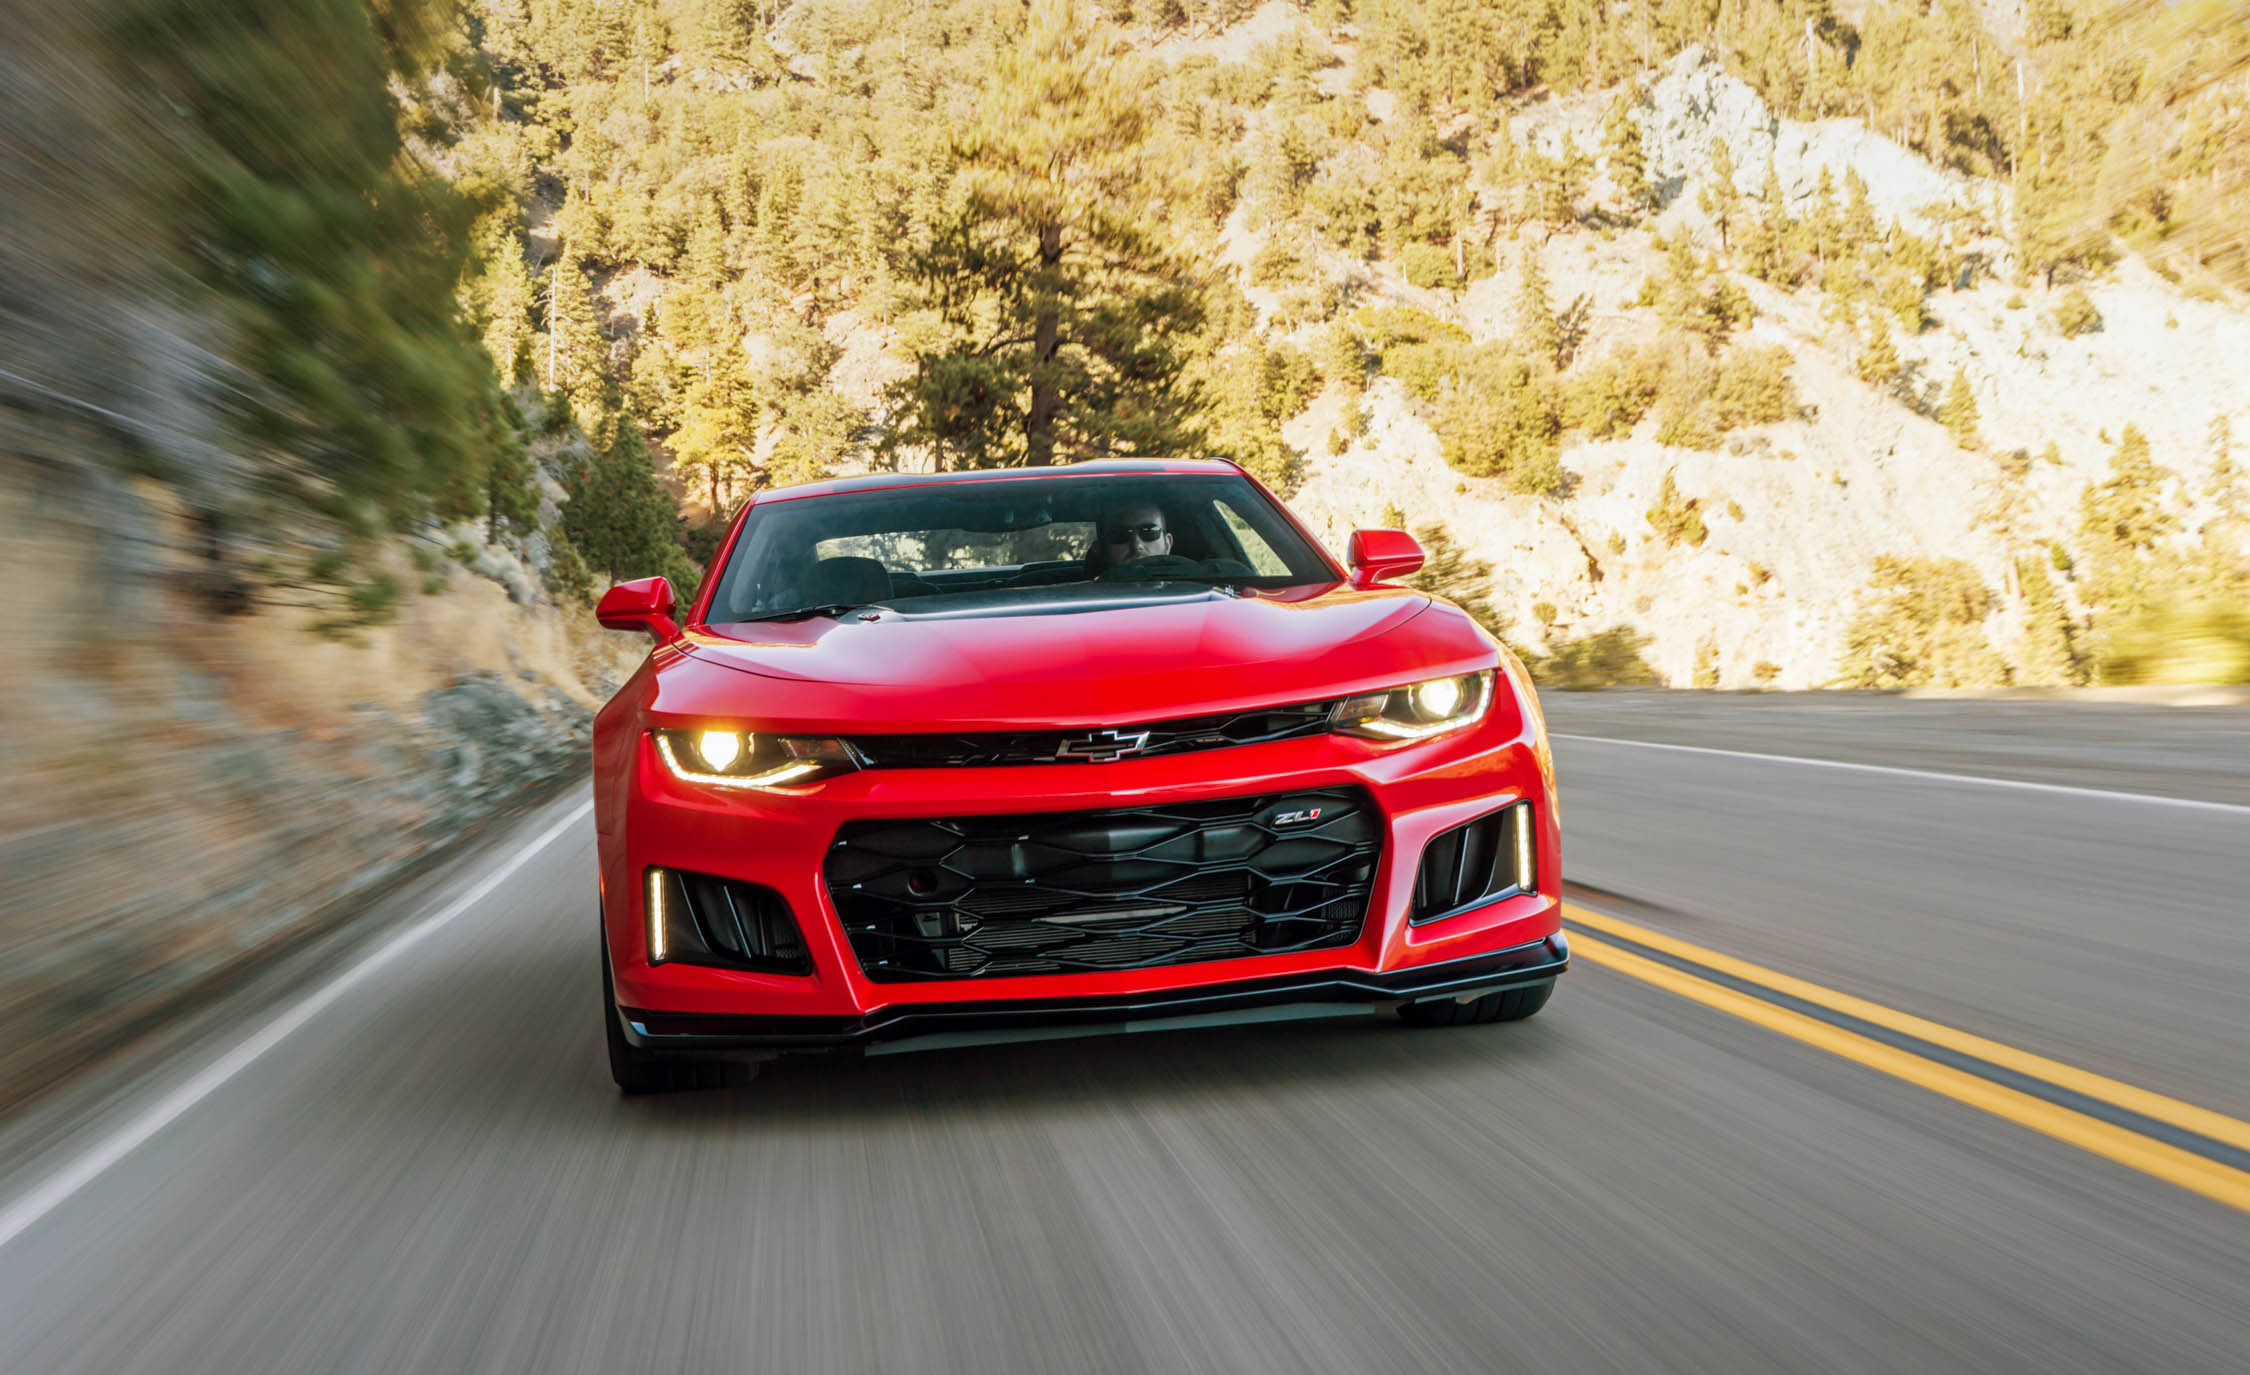 2017 Chevrolet Camaro ZL1 Red Test Drive Front View (Photo 39 of 62)